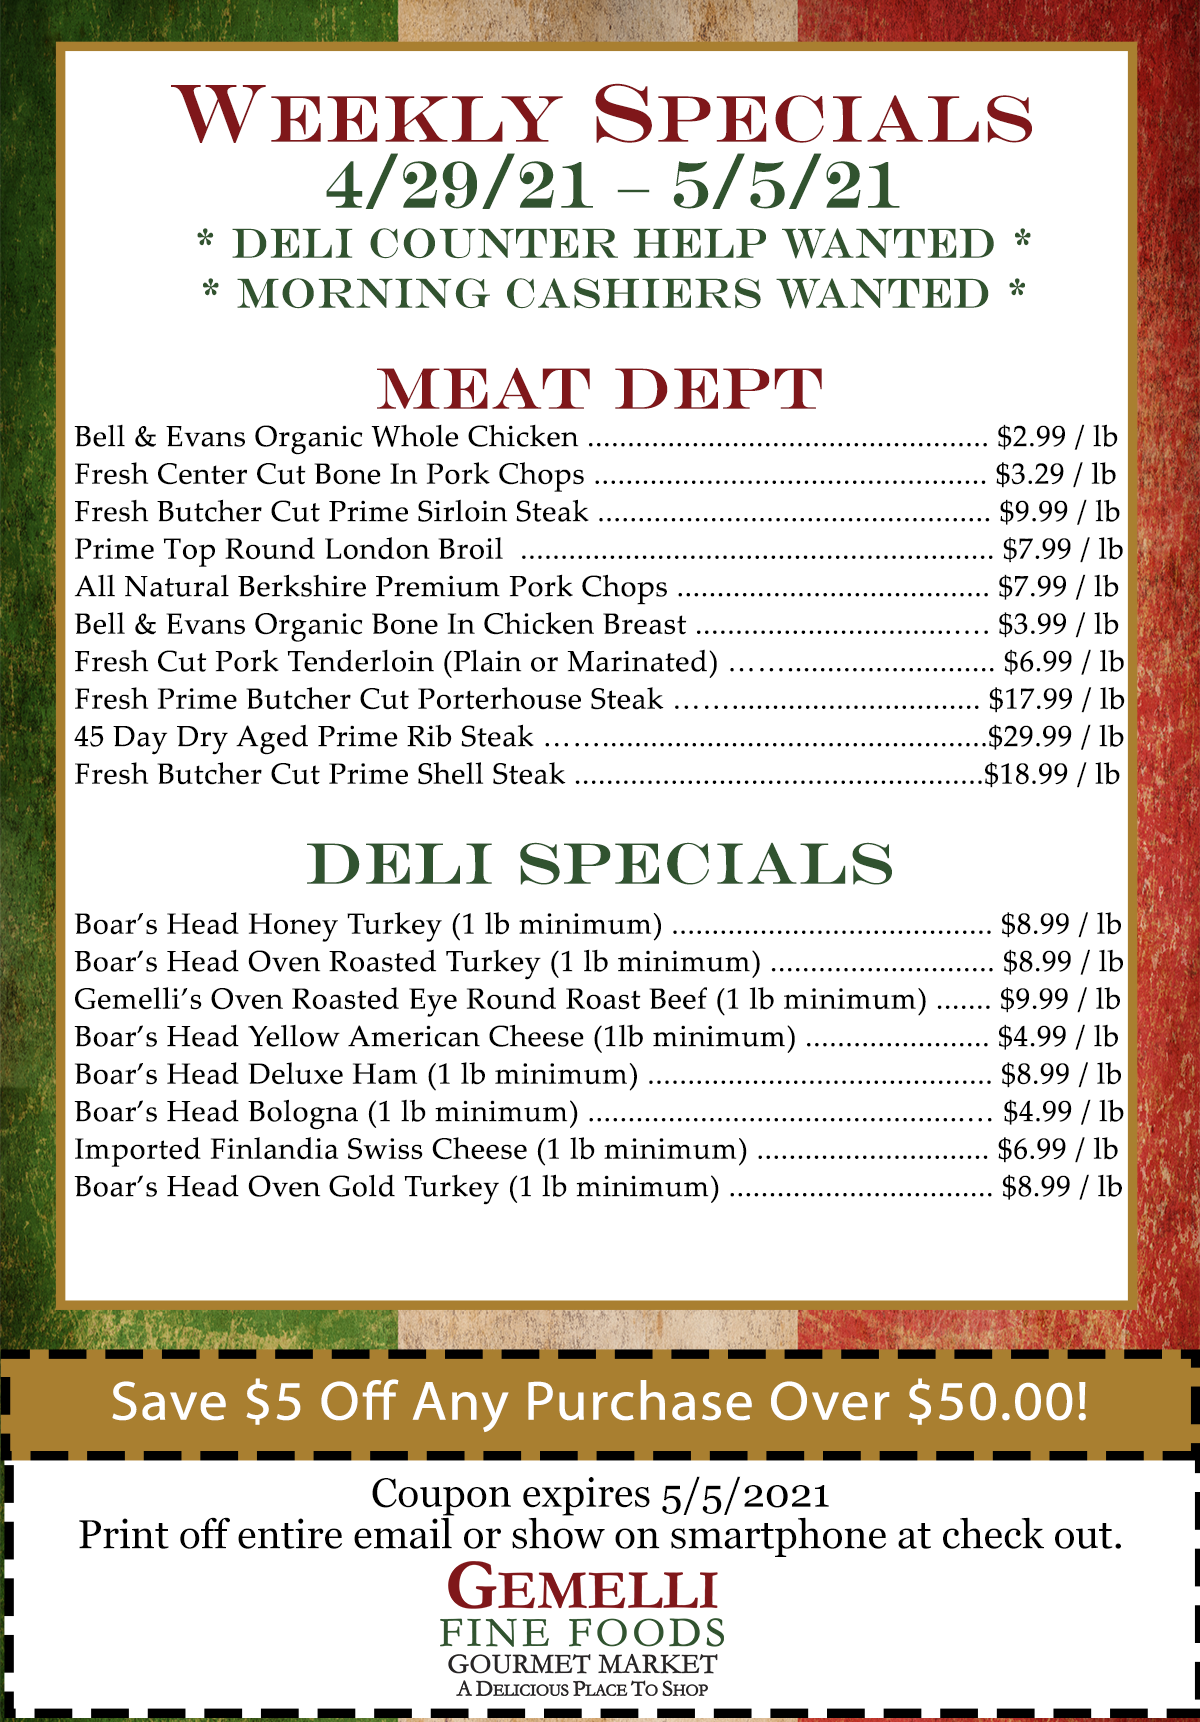 """WEEKLY SALES 4/29/21 – 5/5/21. Deli Counter Help Wanted &  Morning Cashiers Wanted.   Meat Specials: Bell & Evans Organic Whole Chicken … $ 2.99 / lb  Fresh Center Cut Bone In Pork Chops … $ 3.29 / lb Fresh Butcher Cut Prime Sirloin Steak … $ 8.99 / lb Prime Top Round London Broil … $ 7.99 / lb All Natural Berkshire Premium Pork Chops … $ 7.99 / lb Bell & Evans Organic Bone In Chicken Breast … $ 3.99 / lb Fresh Cut Pork Tenderloin (Plain or Marinated) … $ 6.99 / lb  Fresh Prime Butcher Cut Porterhouse Steak… $ 17.99 / lb 45 Day Dry Aged Prime Rib Steak … $ 29.99 / lb Fresh Butcher Cut Prime Shell Steak … $ 18.99 / lb   Deli Specials: Boar's Head Honey Turkey … $ 8.99 / lb (1 lb minimum) Boar's Head Oven Roasted Turkey … $ 8.99 / lb (1 lb minimum) Gemelli""""s Oven Roasted Eye Round Roast Beef (1 lb minimum) … $ 9.99 /lb Boars Head Yellow American Cheese … $ 4.99 / lb (1 lb minimum) Boar's Head Deluxe Ham … $ 8.99 / lb (1 lb minimum) Boar's Head Bologna … $ 4.99 / lb (1 lb minimum) Imported Finlandia Swiss Cheese … $ 6.99 / lb (1 lb minimum) Boar's Head Oven Gold Turkey … $ 8.99 / lb (1 lb minimum)    Coupon:$5.00 off any purchase of $50.00 or more (expires May 5, 2021)"""